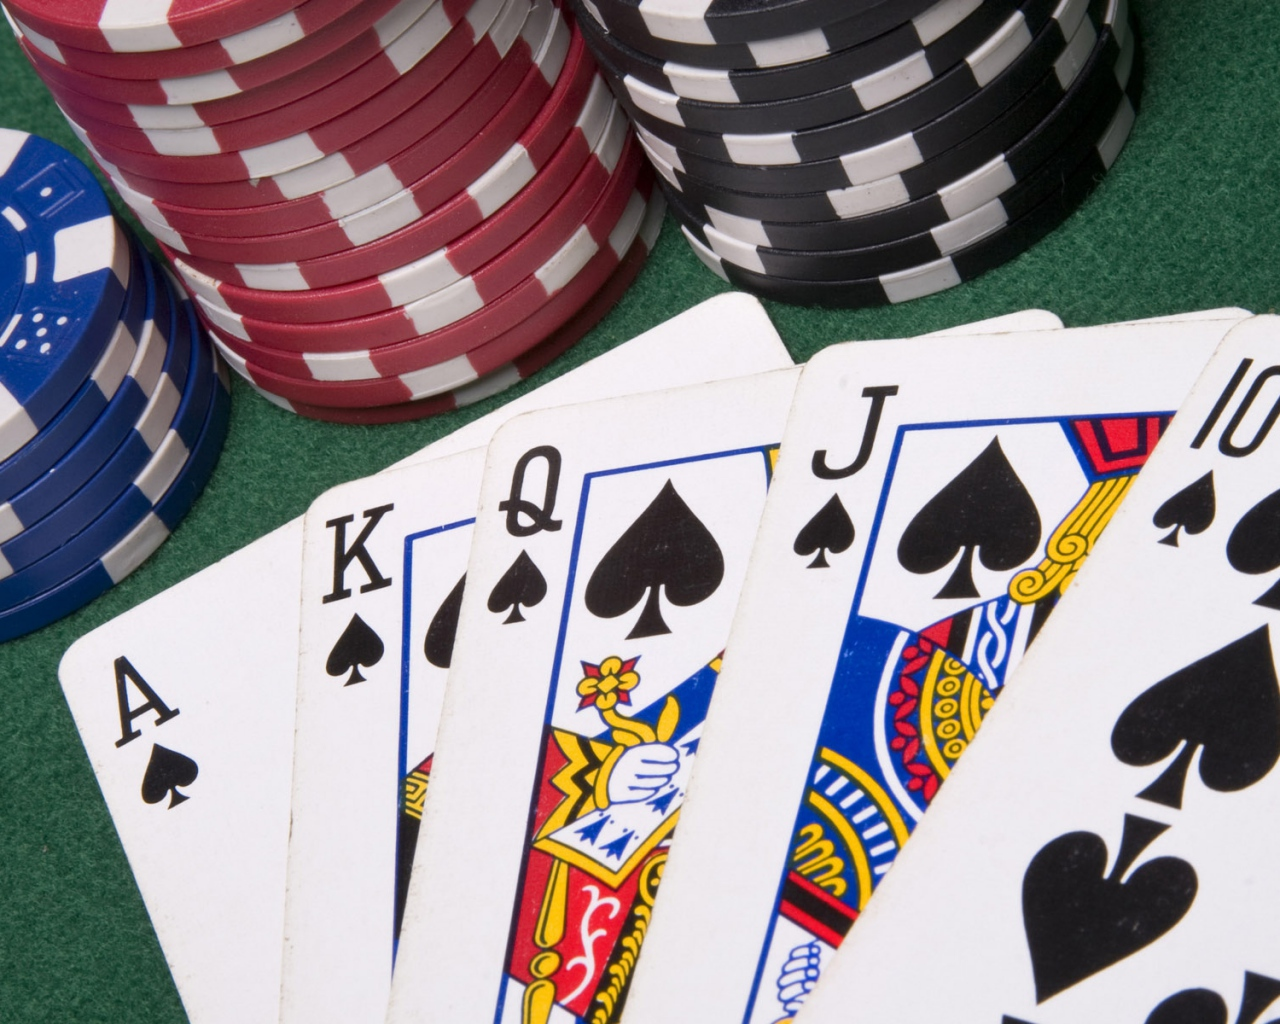 Join Pokerace99 And Play Free Poker Game Online